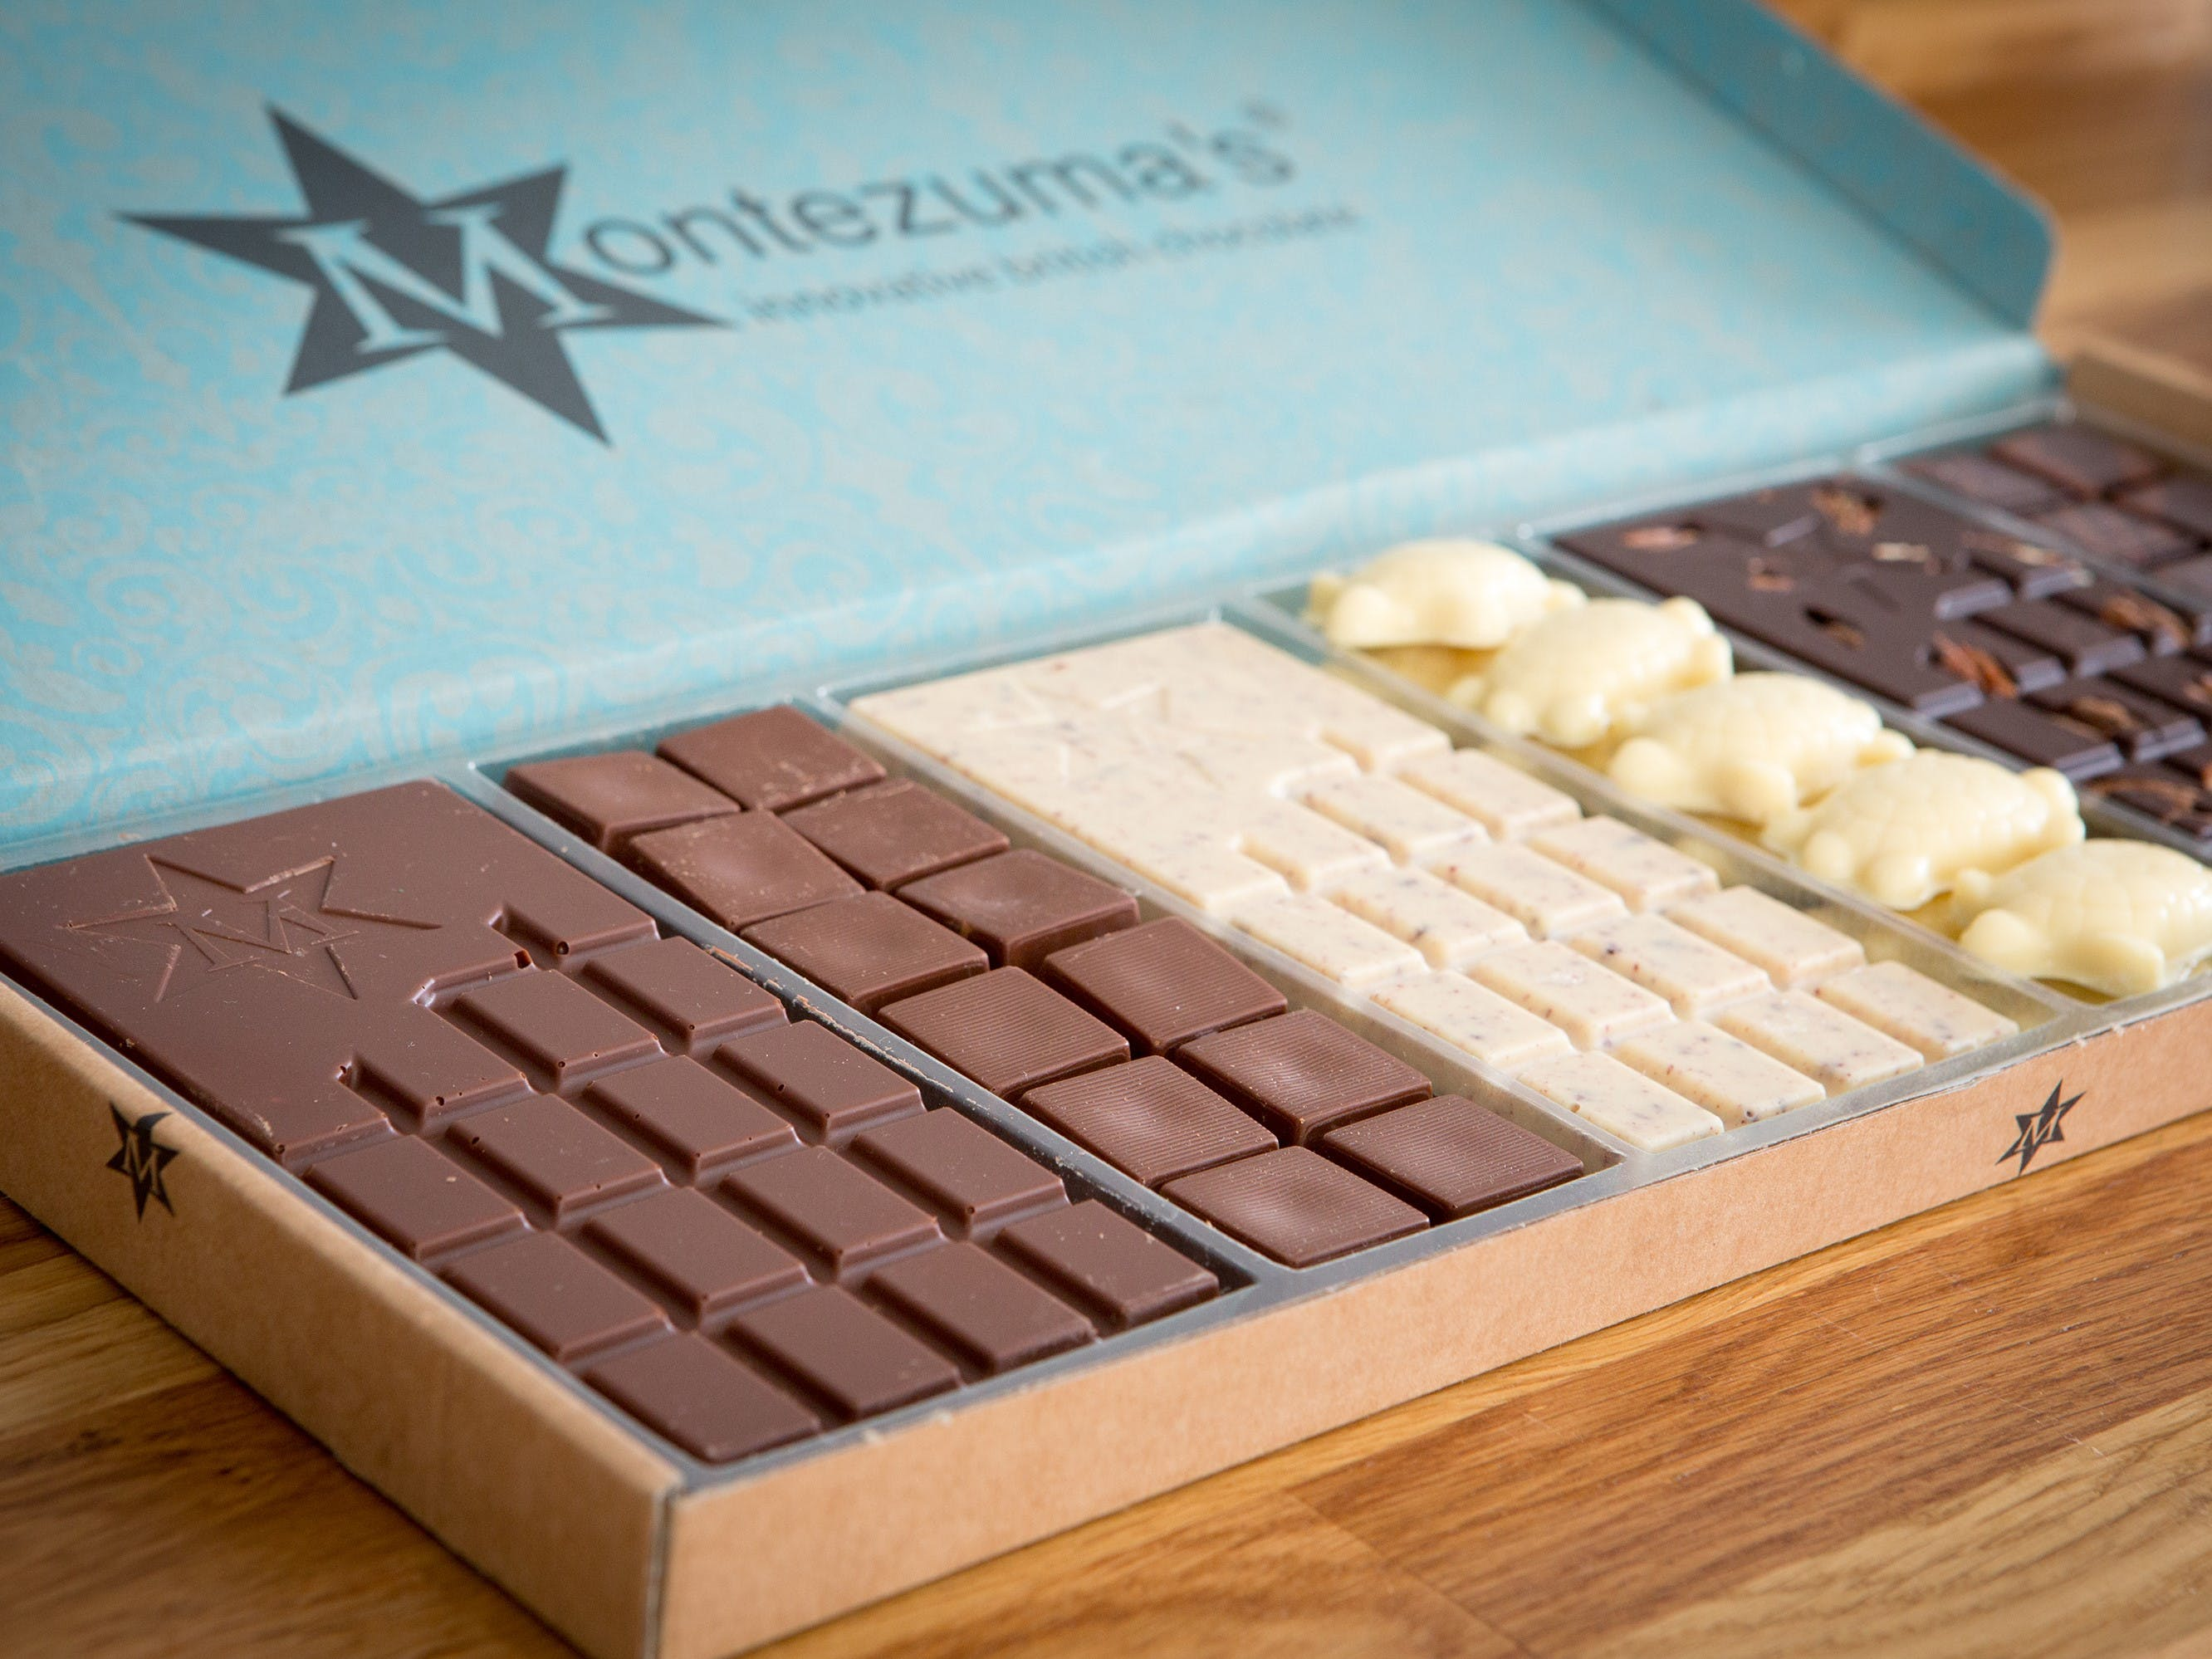 Montezuma's The Real Chocolate Club Box